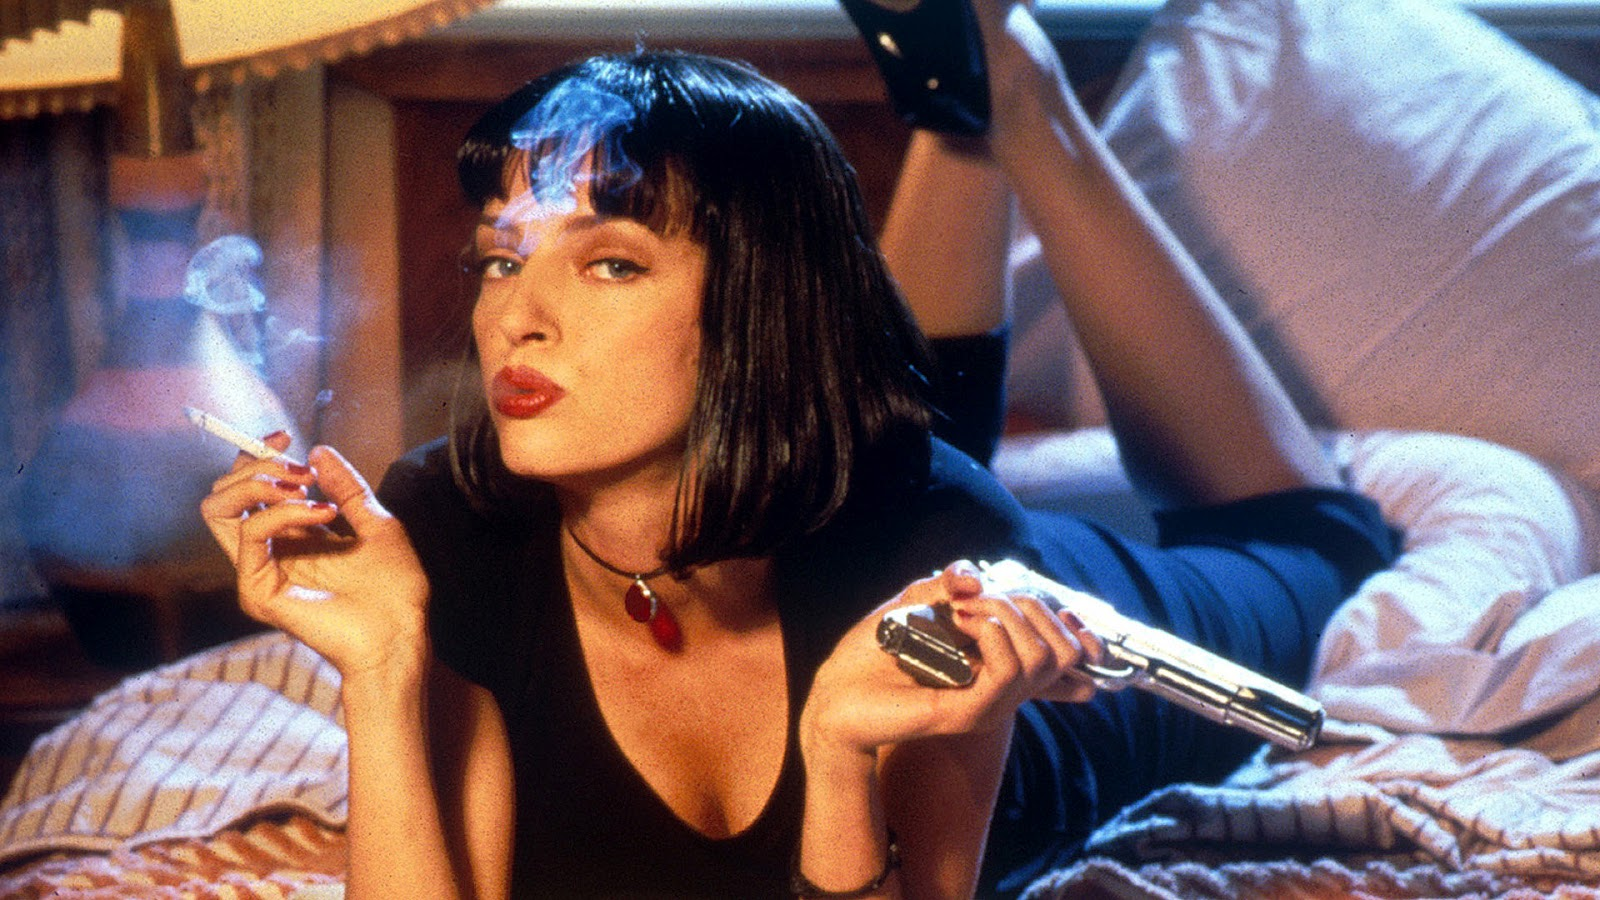 pulp_fiction_new_images_for_windows